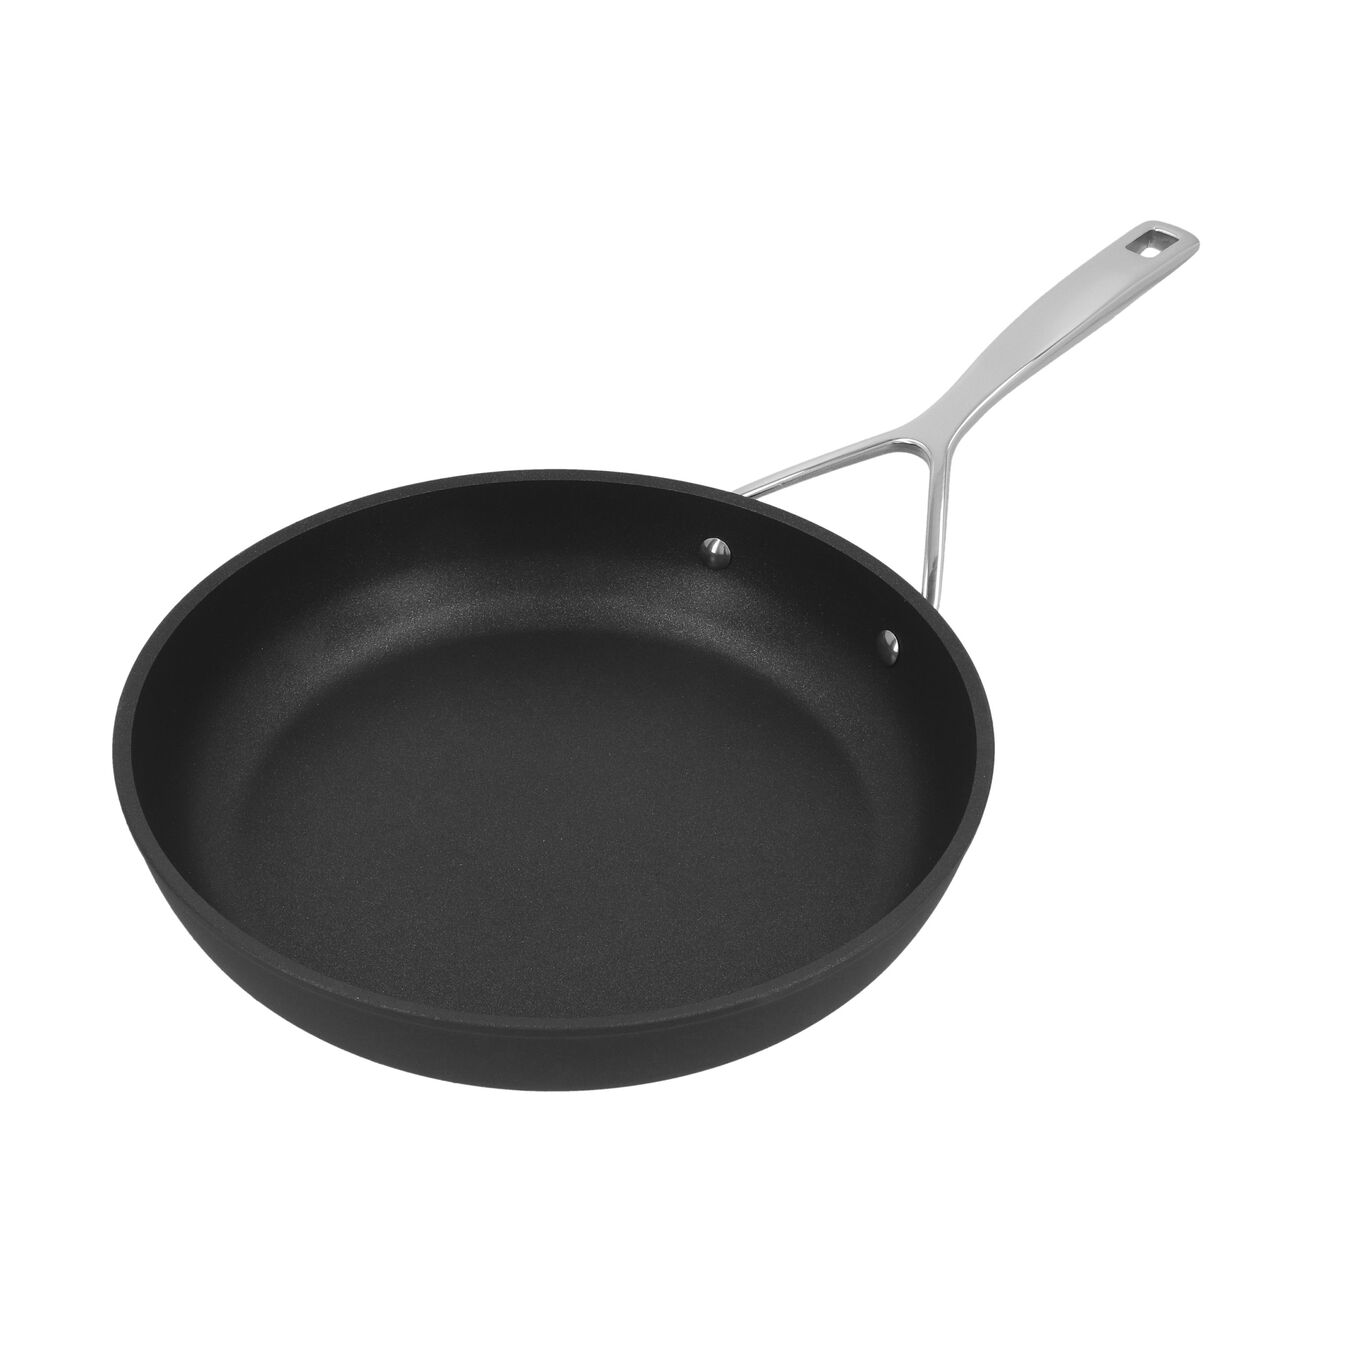 10-inch, Aluminium, Non-stick Frying pan,,large 2